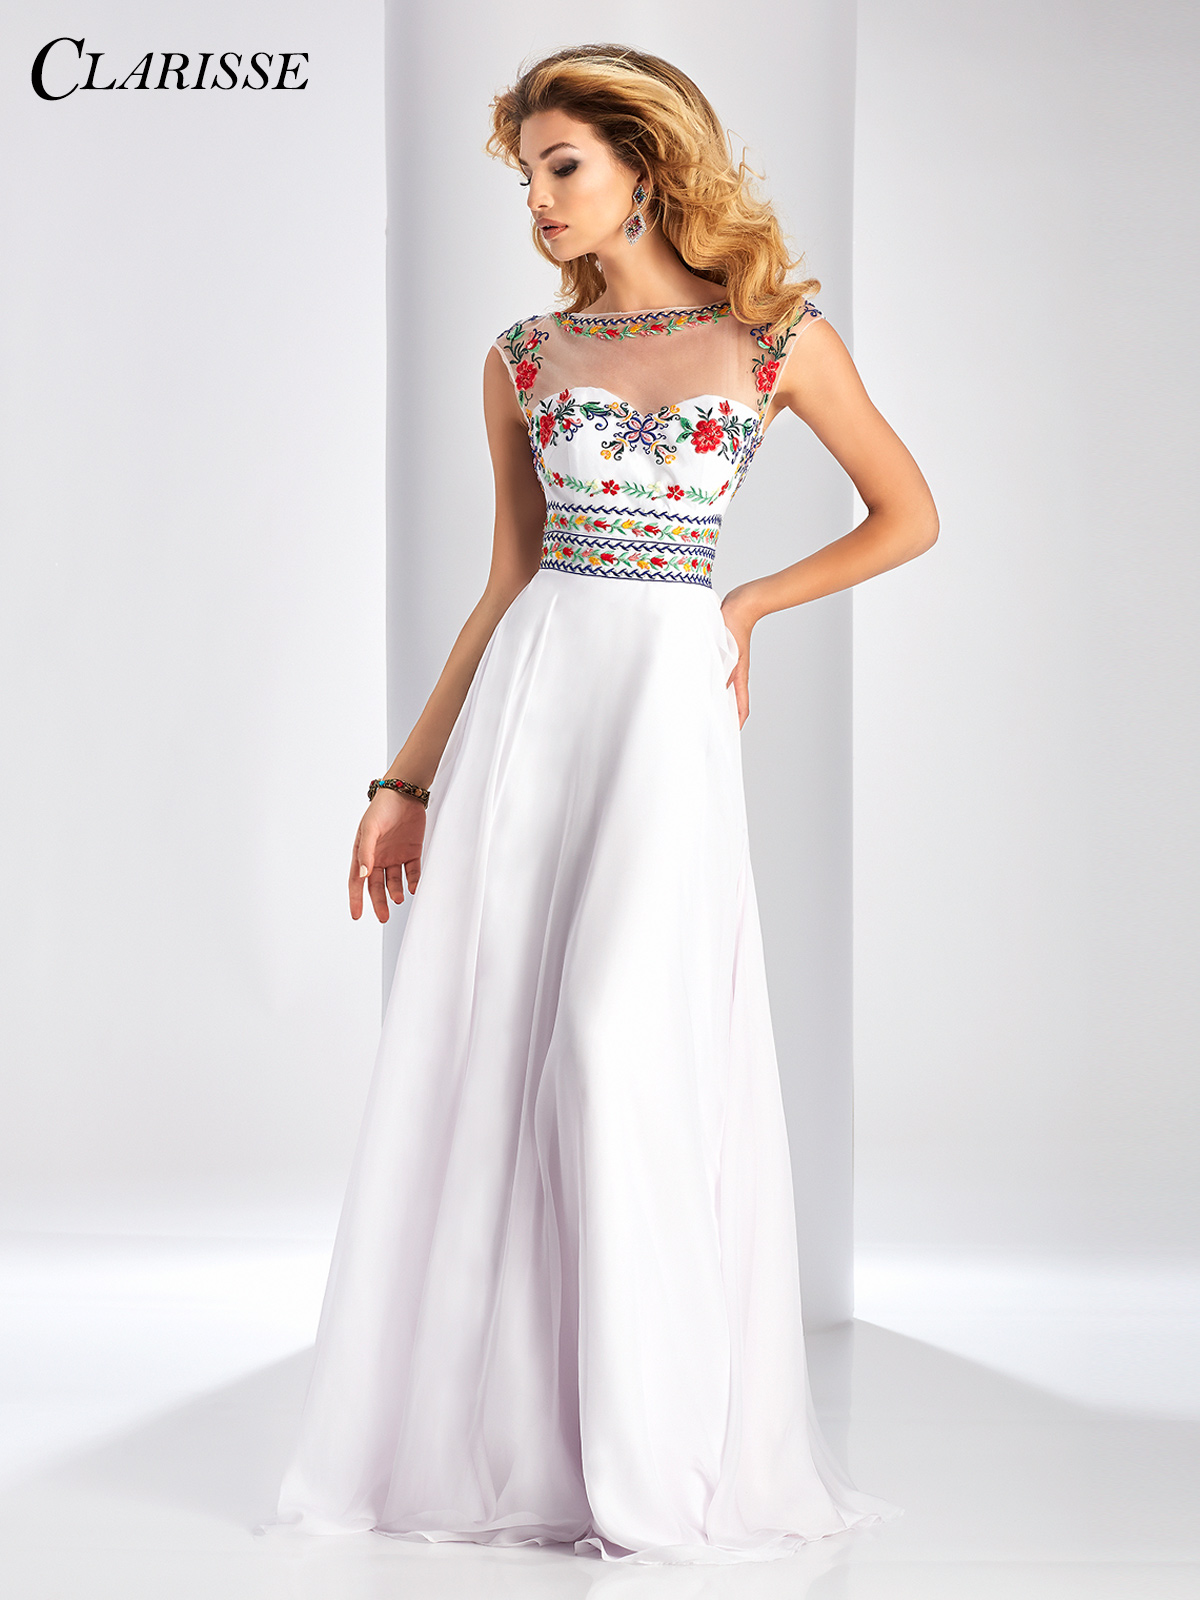 Clarisse Prom Dress 3050 | Promgirl.net